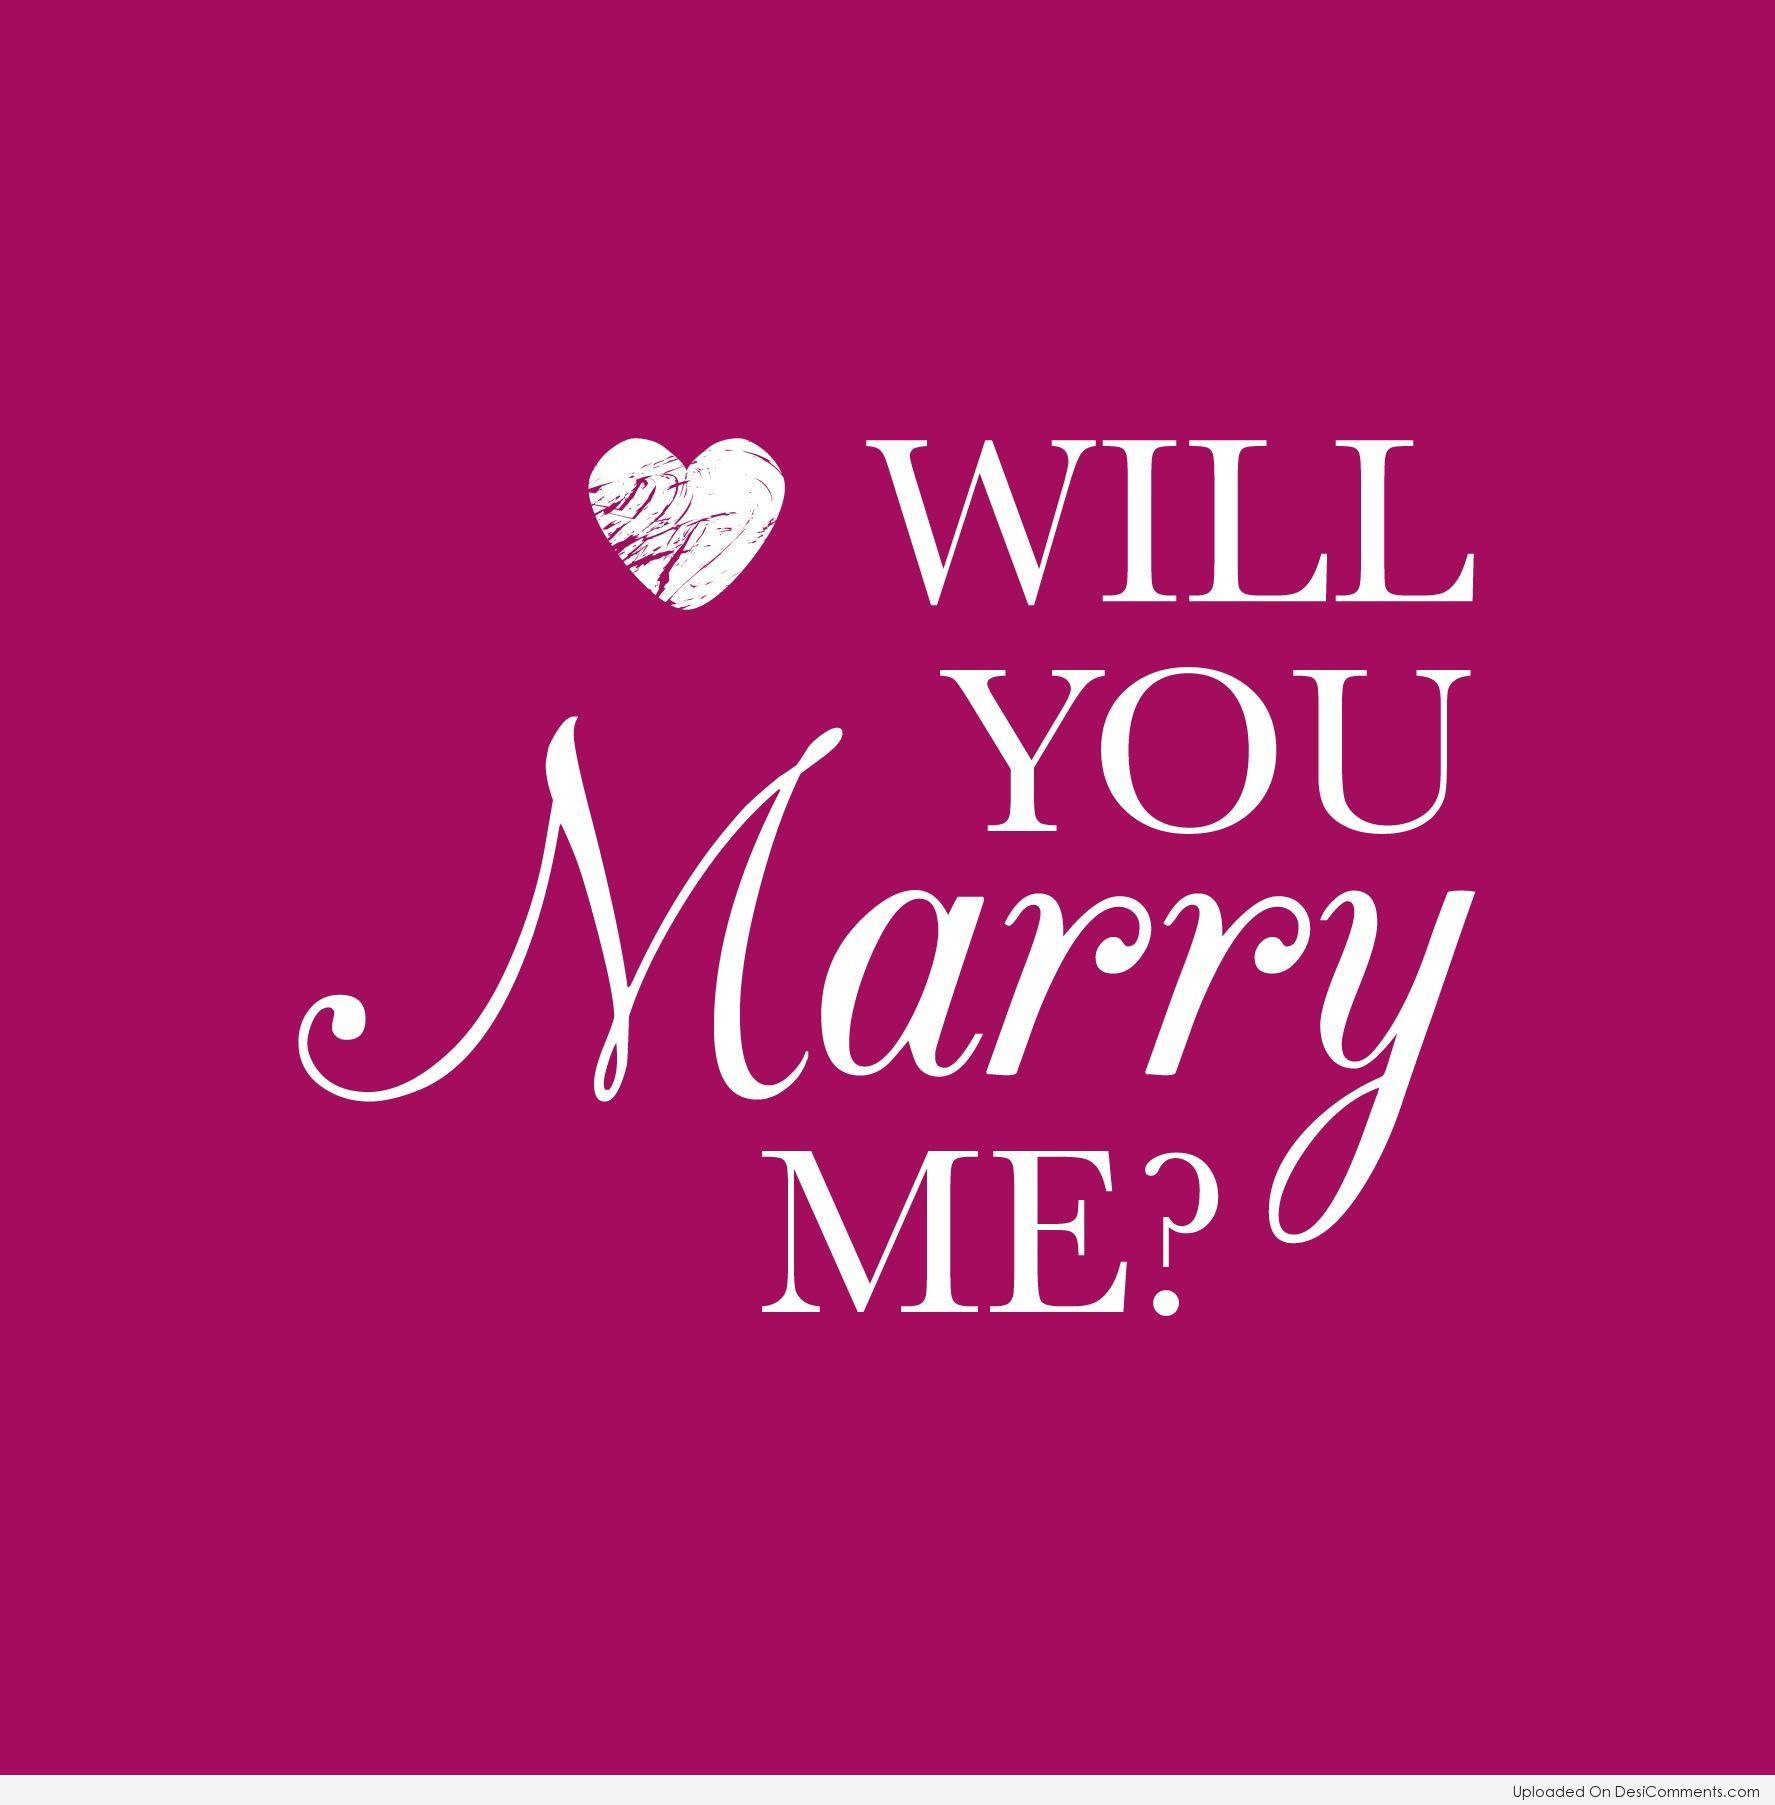 Will you marry me - DesiComments.com